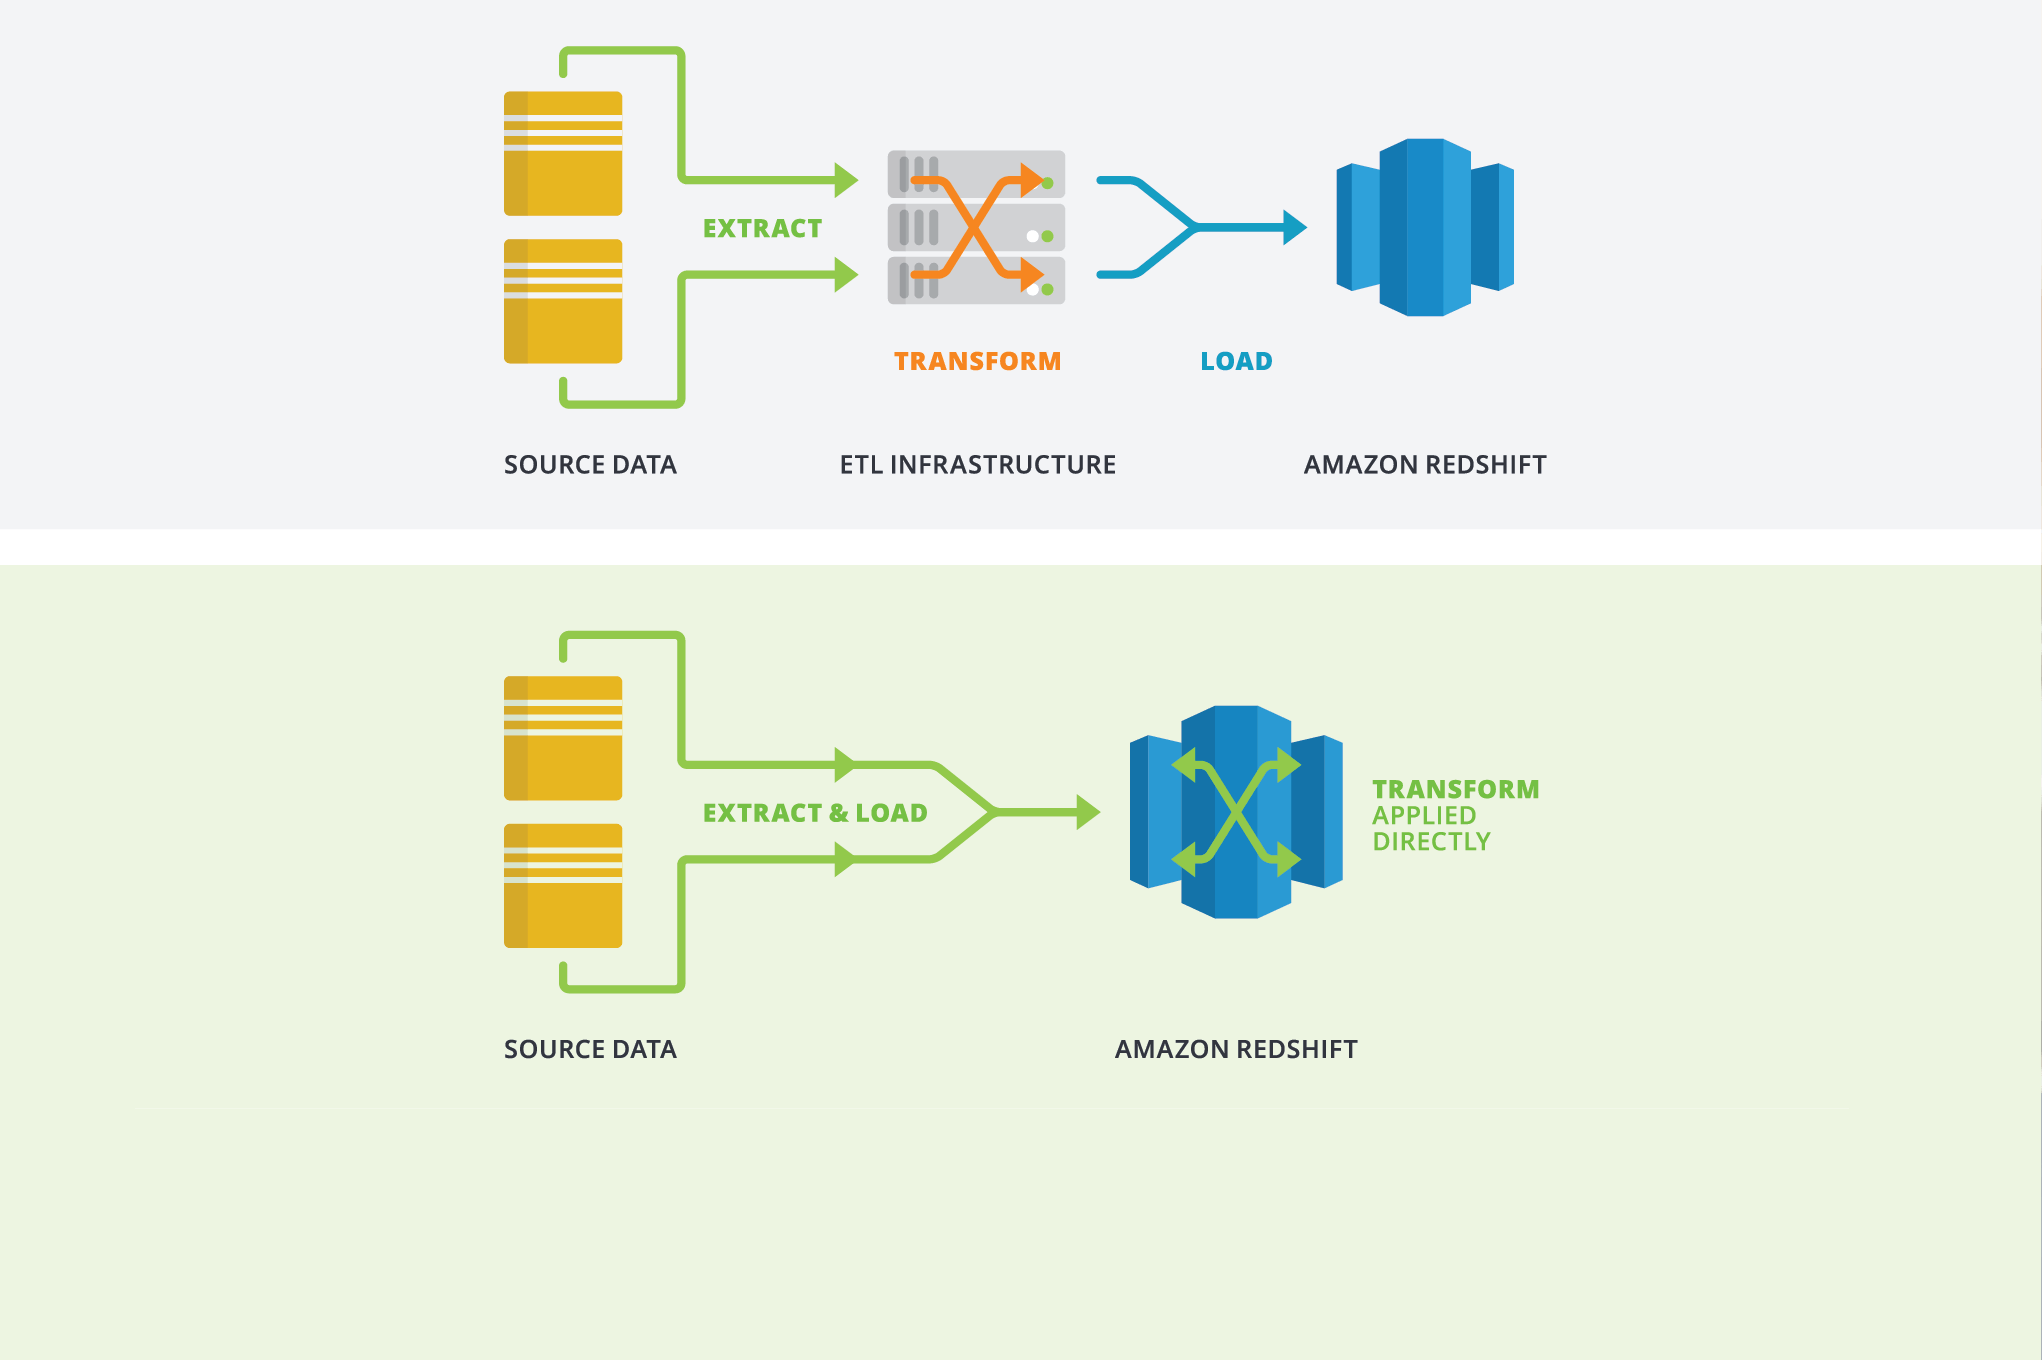 matillion-etl-elt-diagram-blog-01